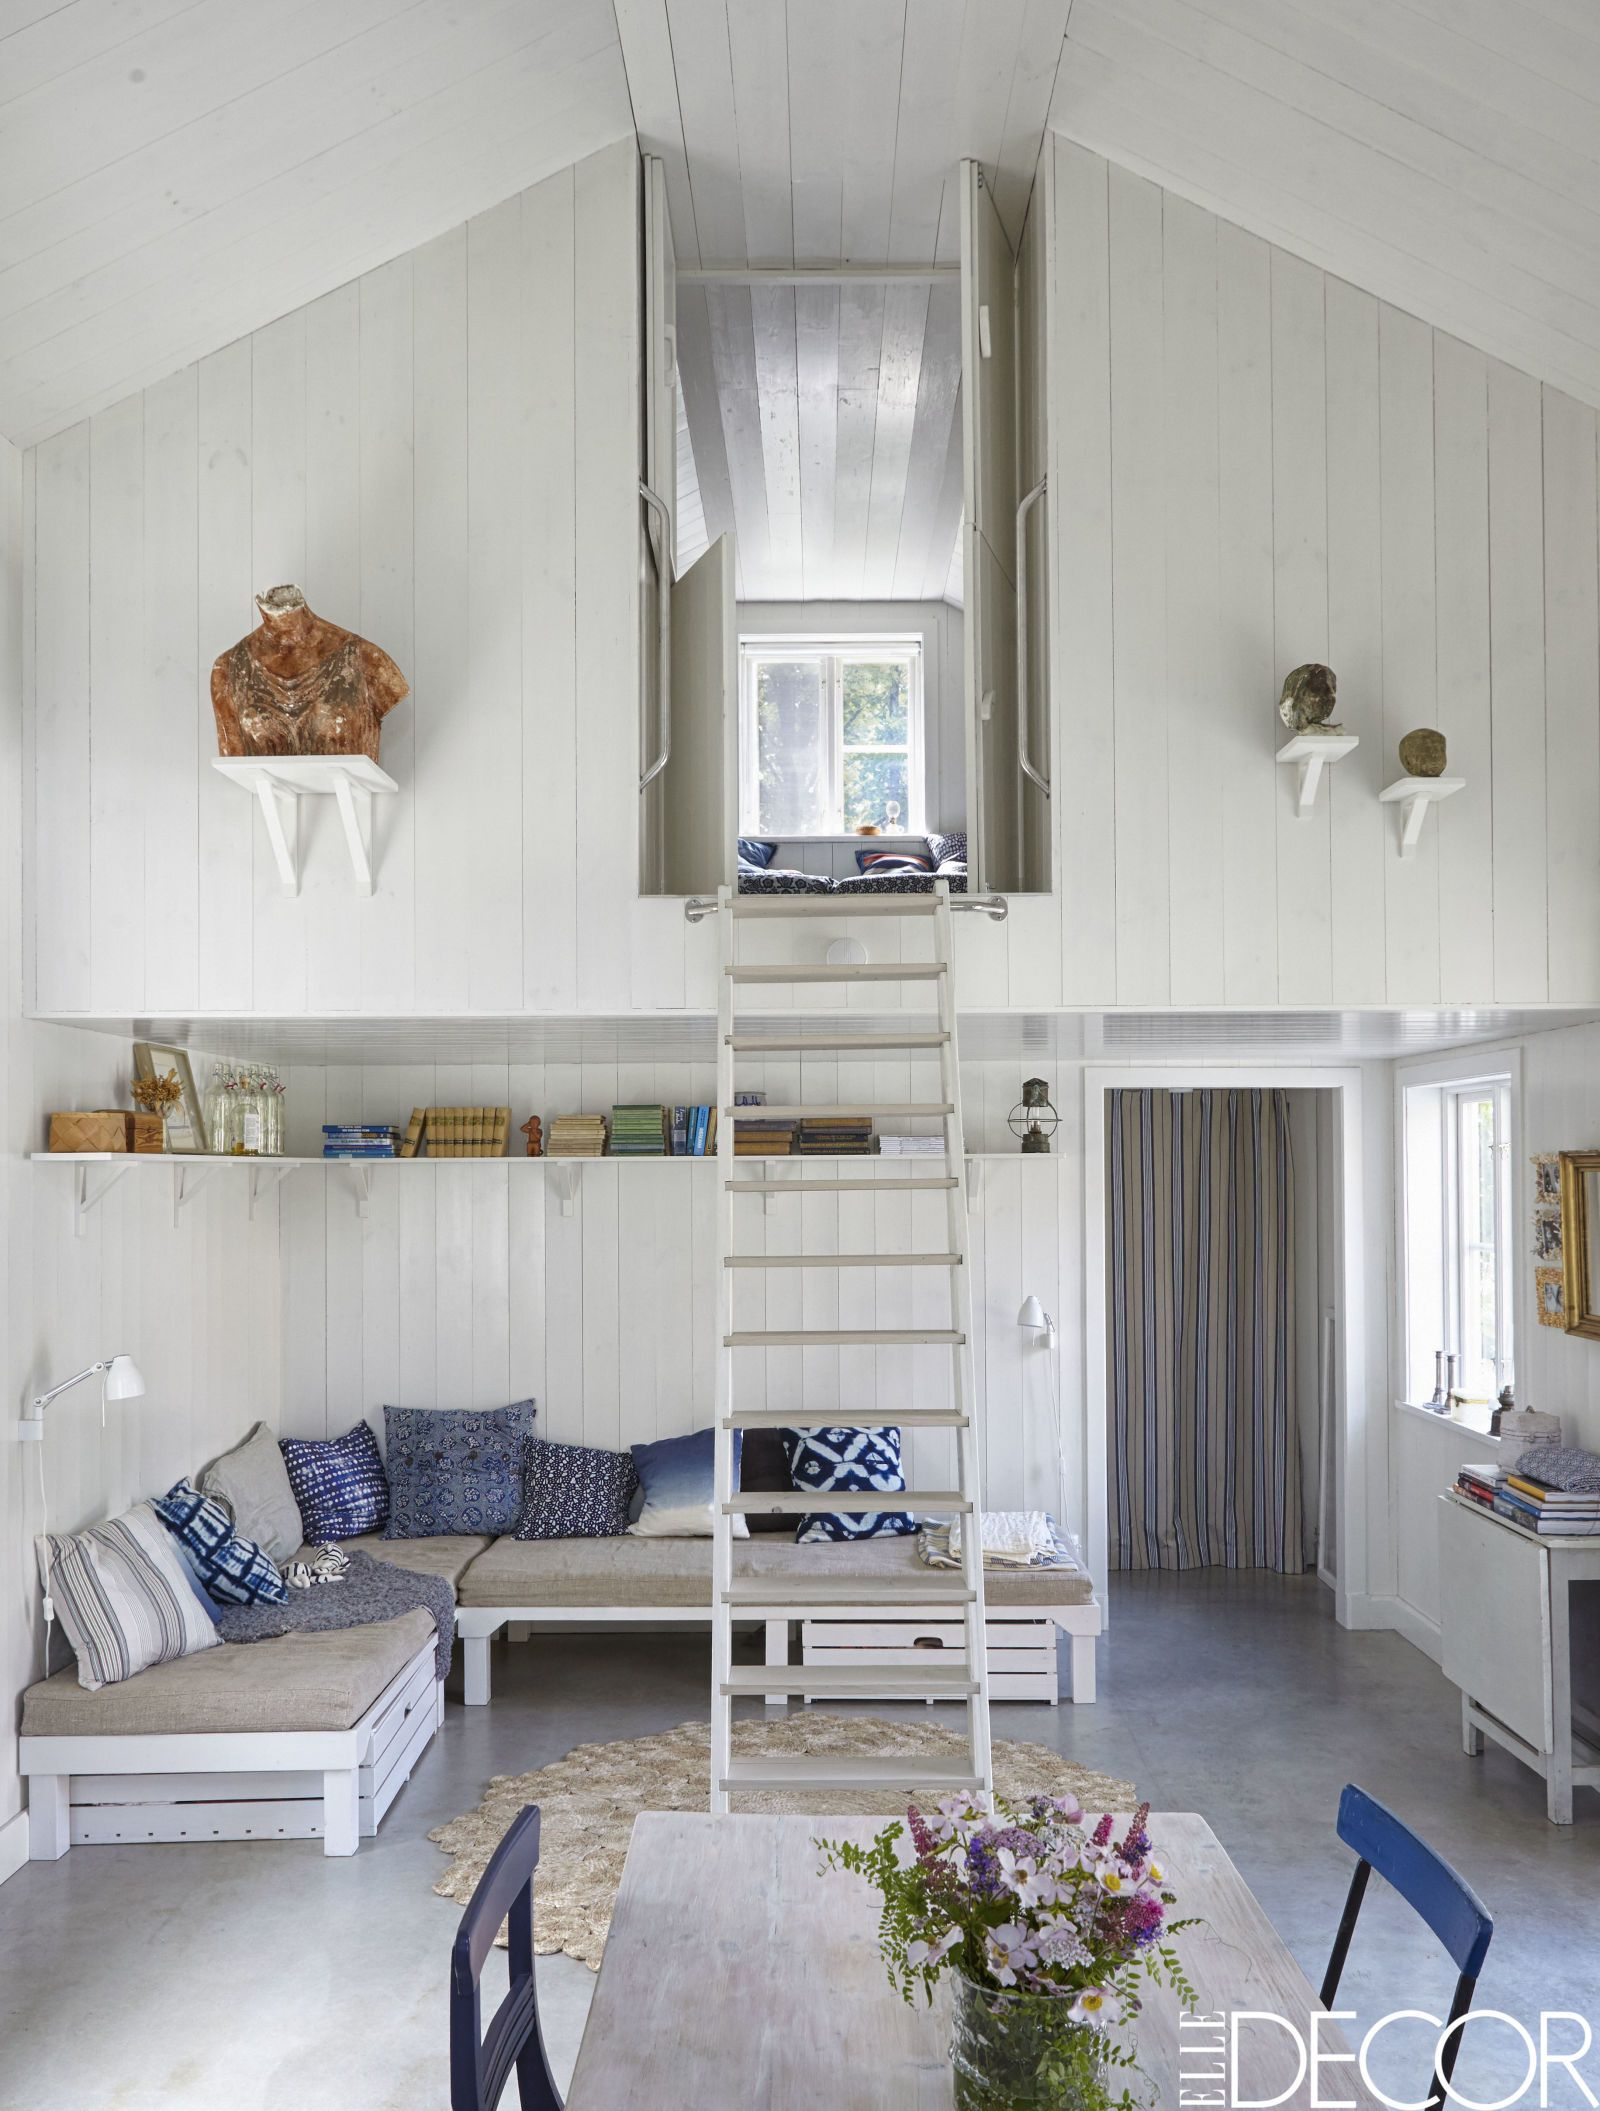 This Rustic Minimalist Swedish Cottage Is The Most Charming